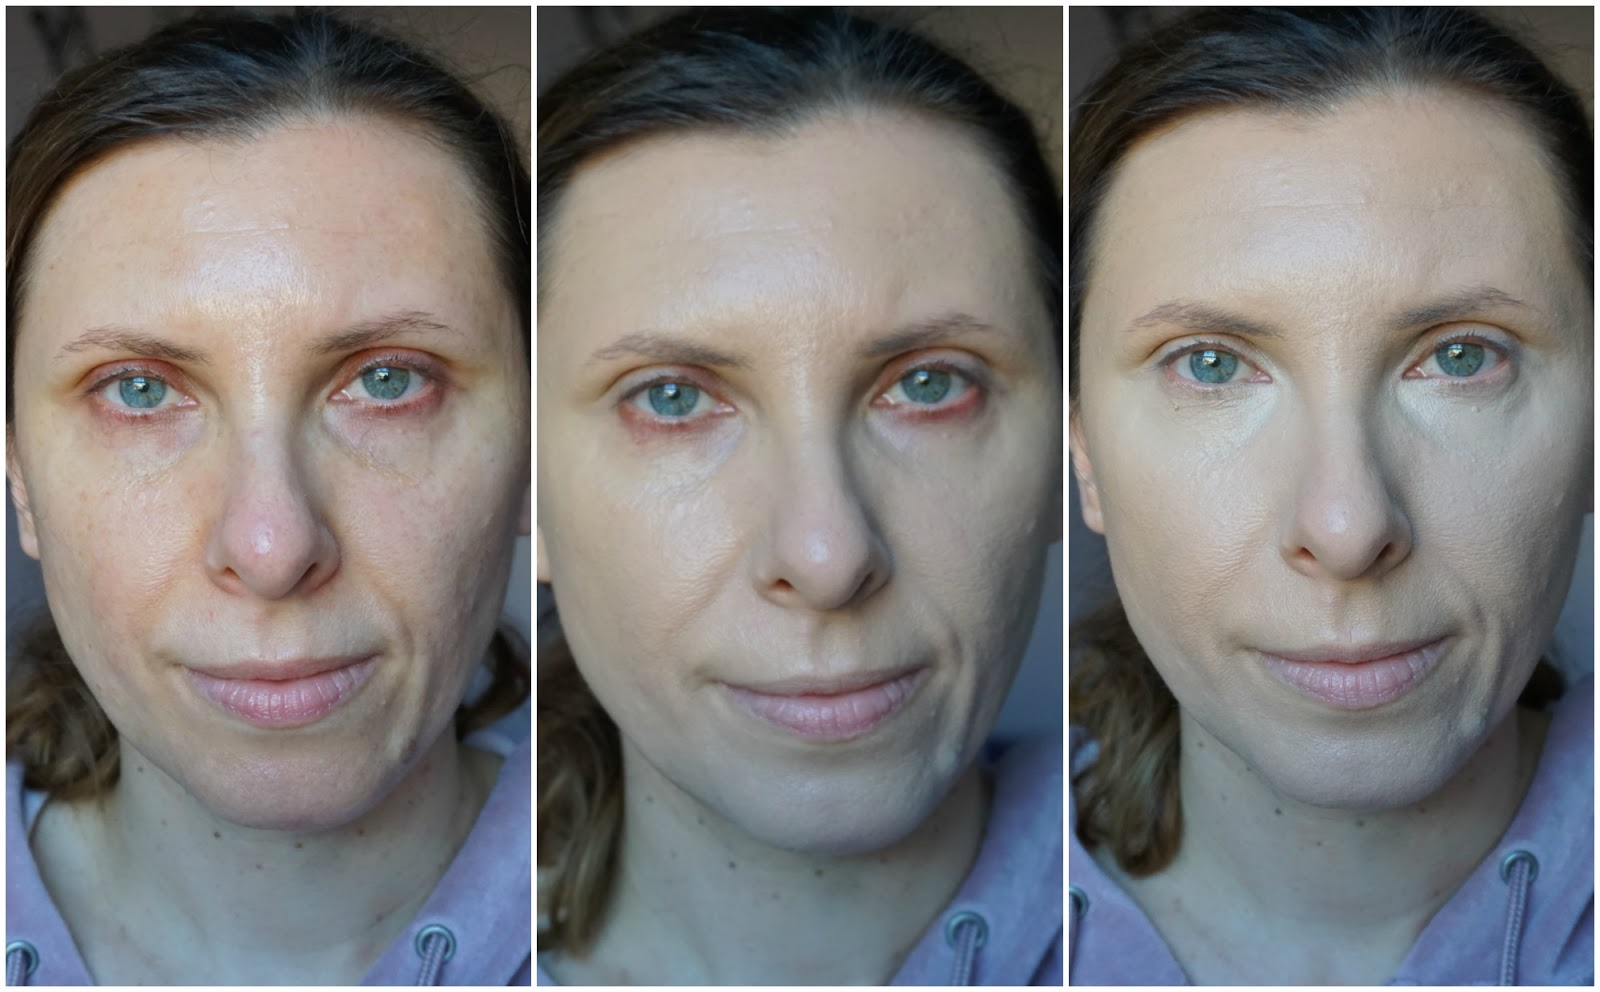 No7 HydraLuminous Foundation and Dark Circle Concealer-before and after photos